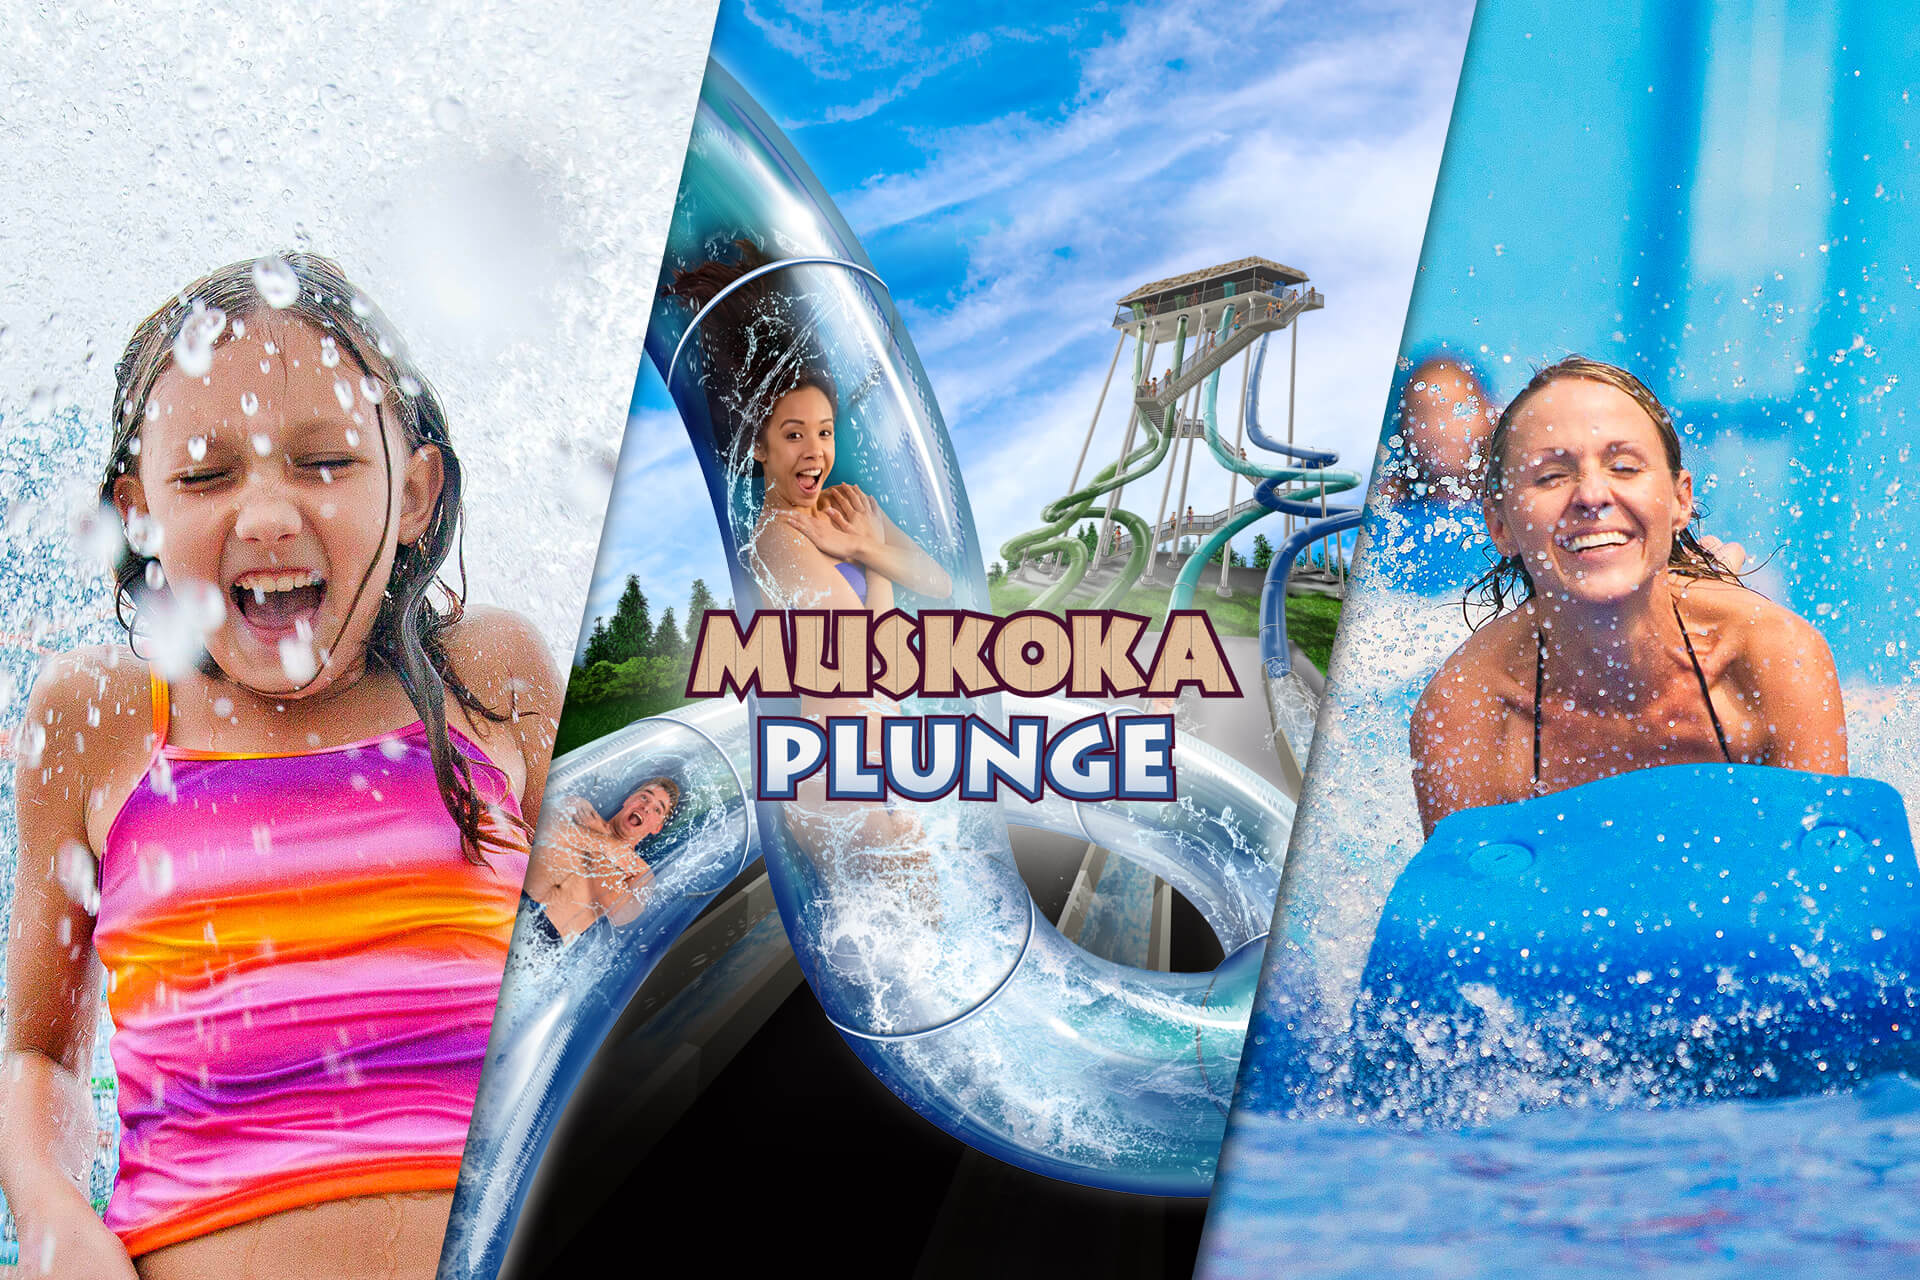 Muskoka Plunge at Canada's Wonderland's Splash Works Water Park in Toronto